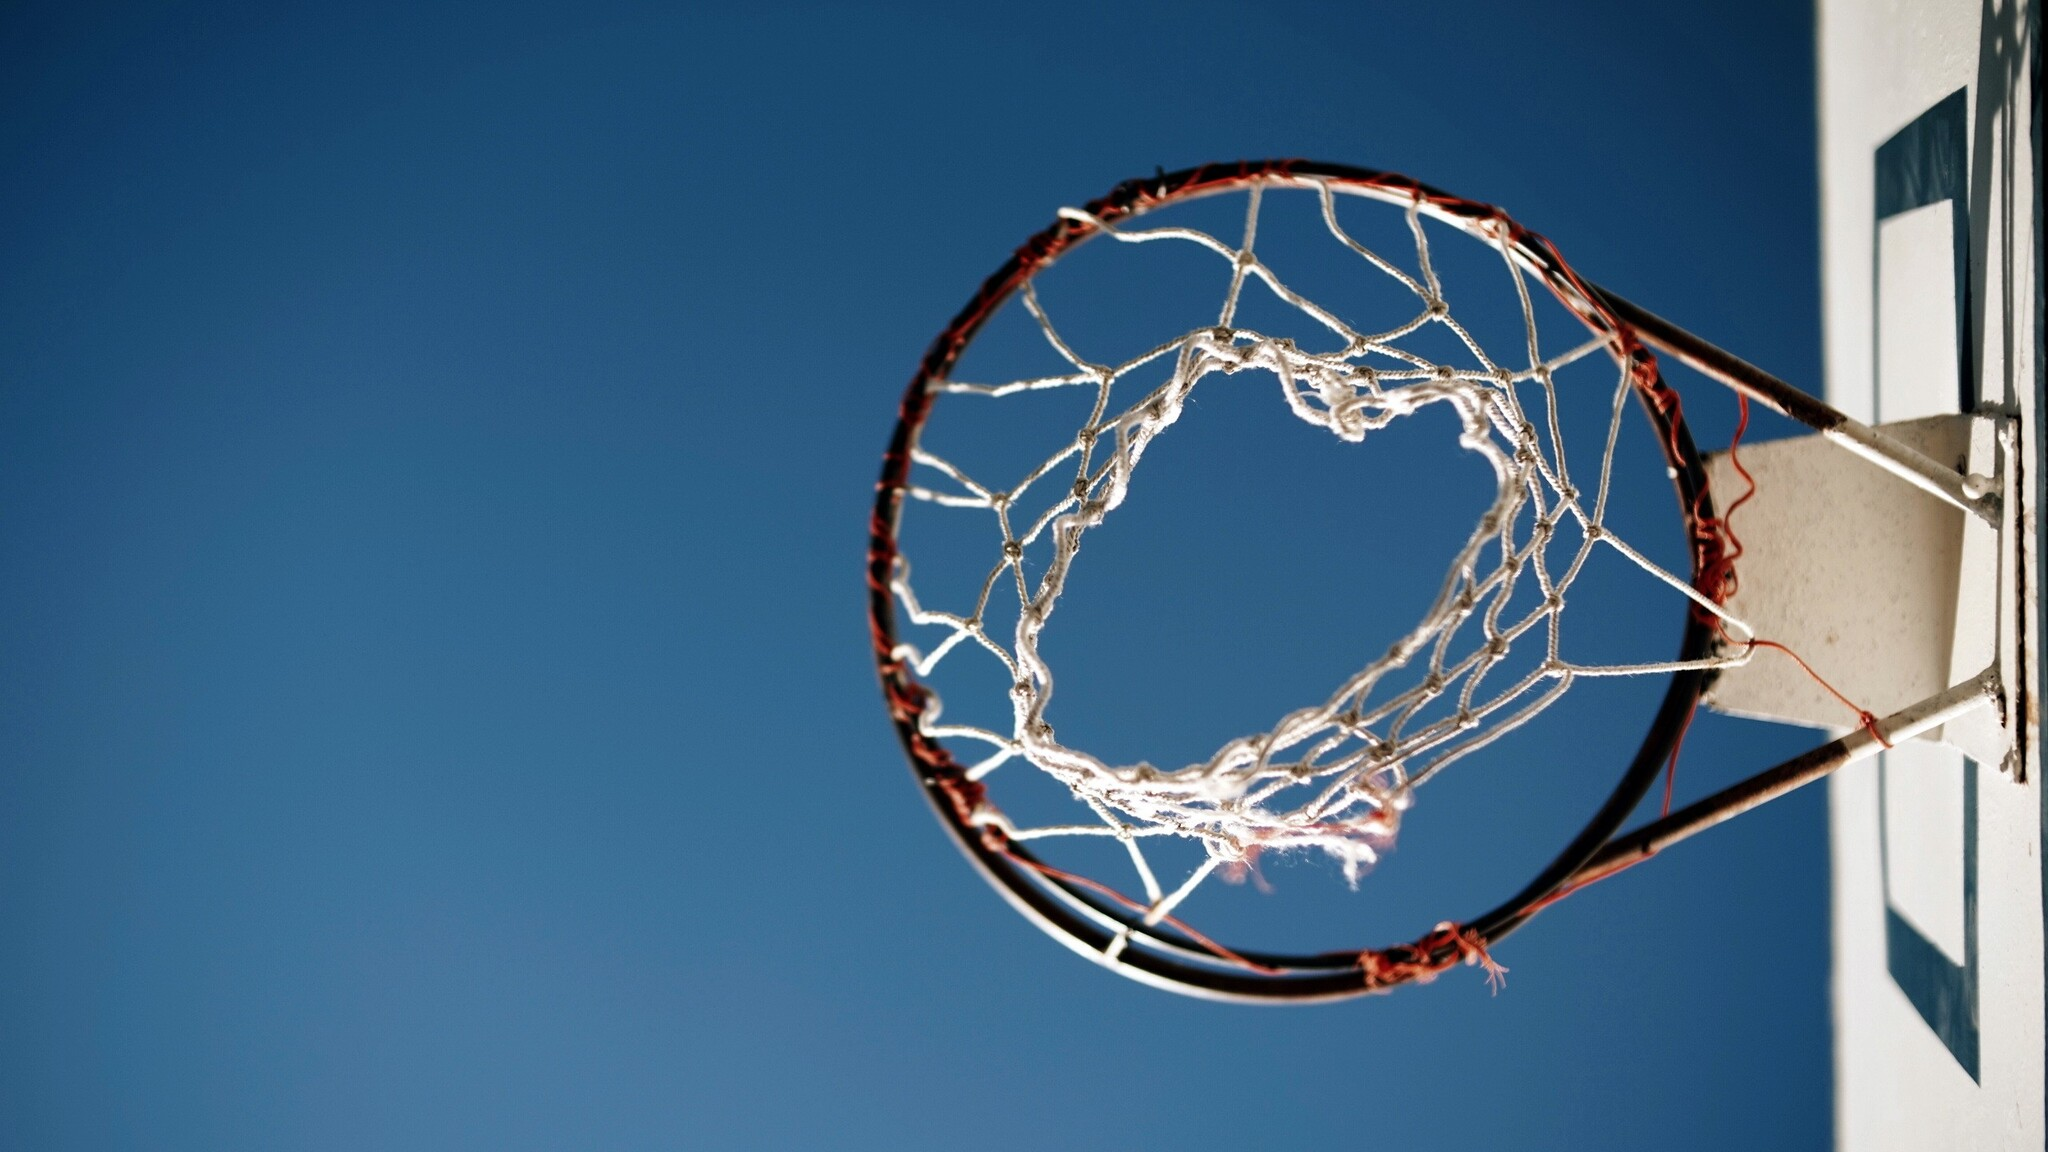 2048x1152 Basketball Images